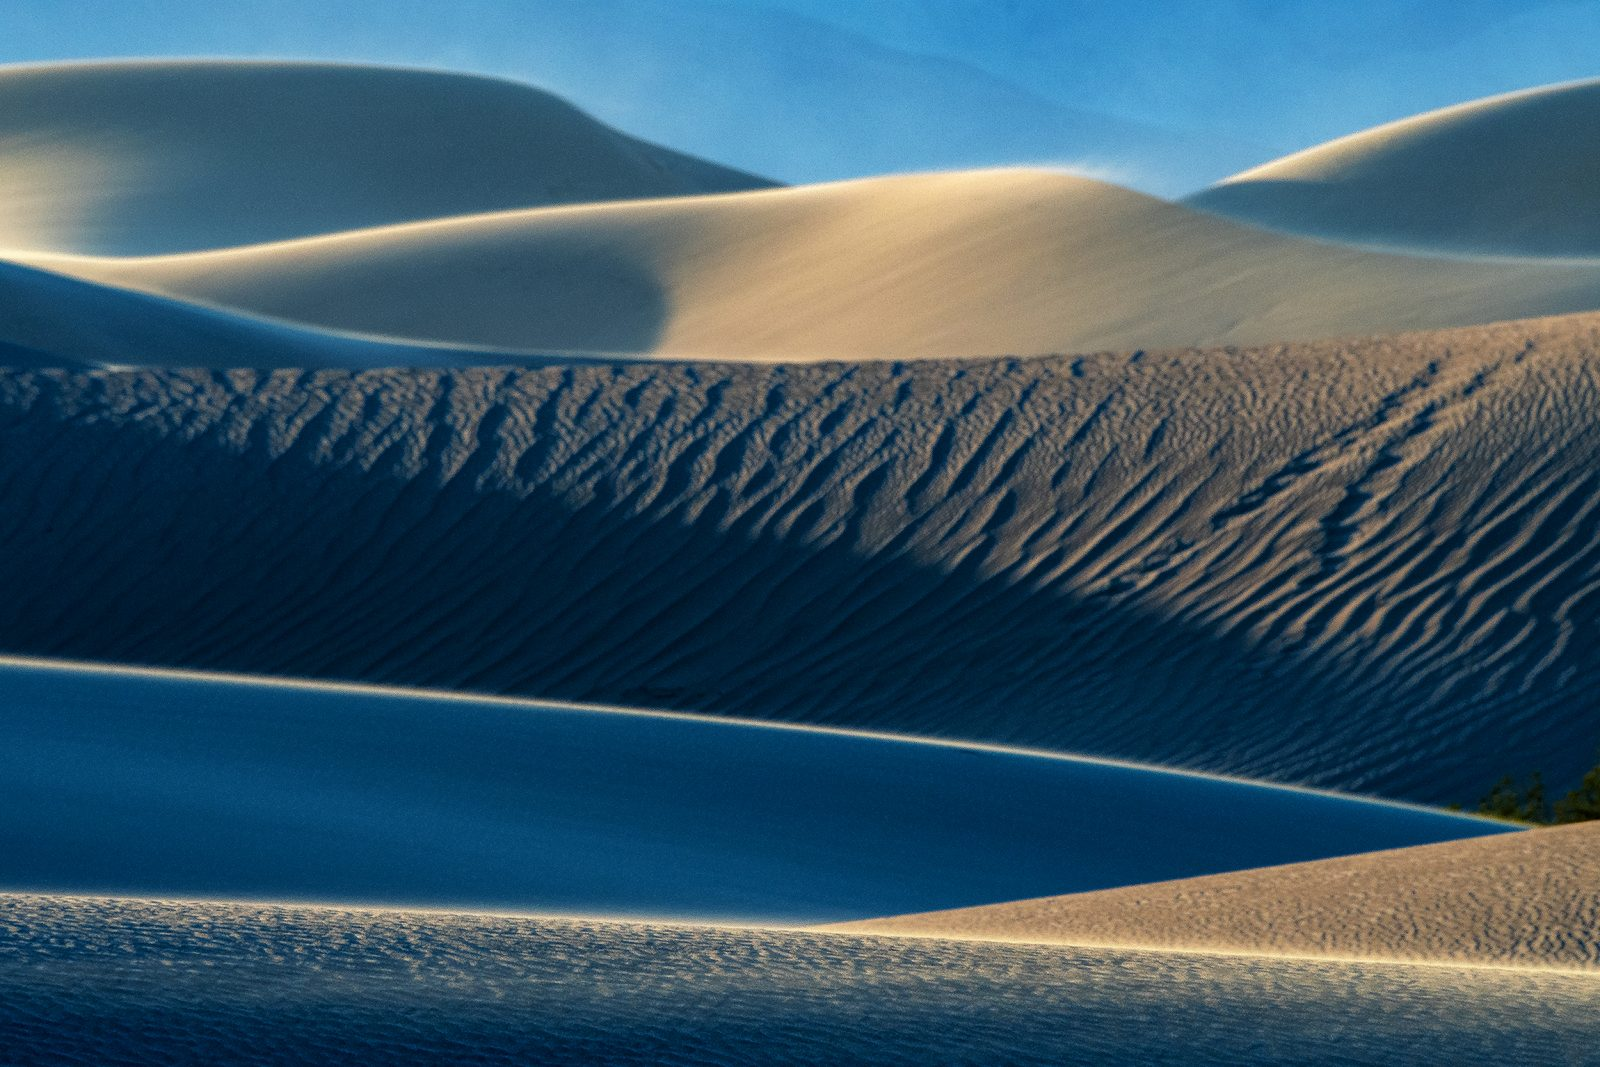 Sand, Texture and Wind